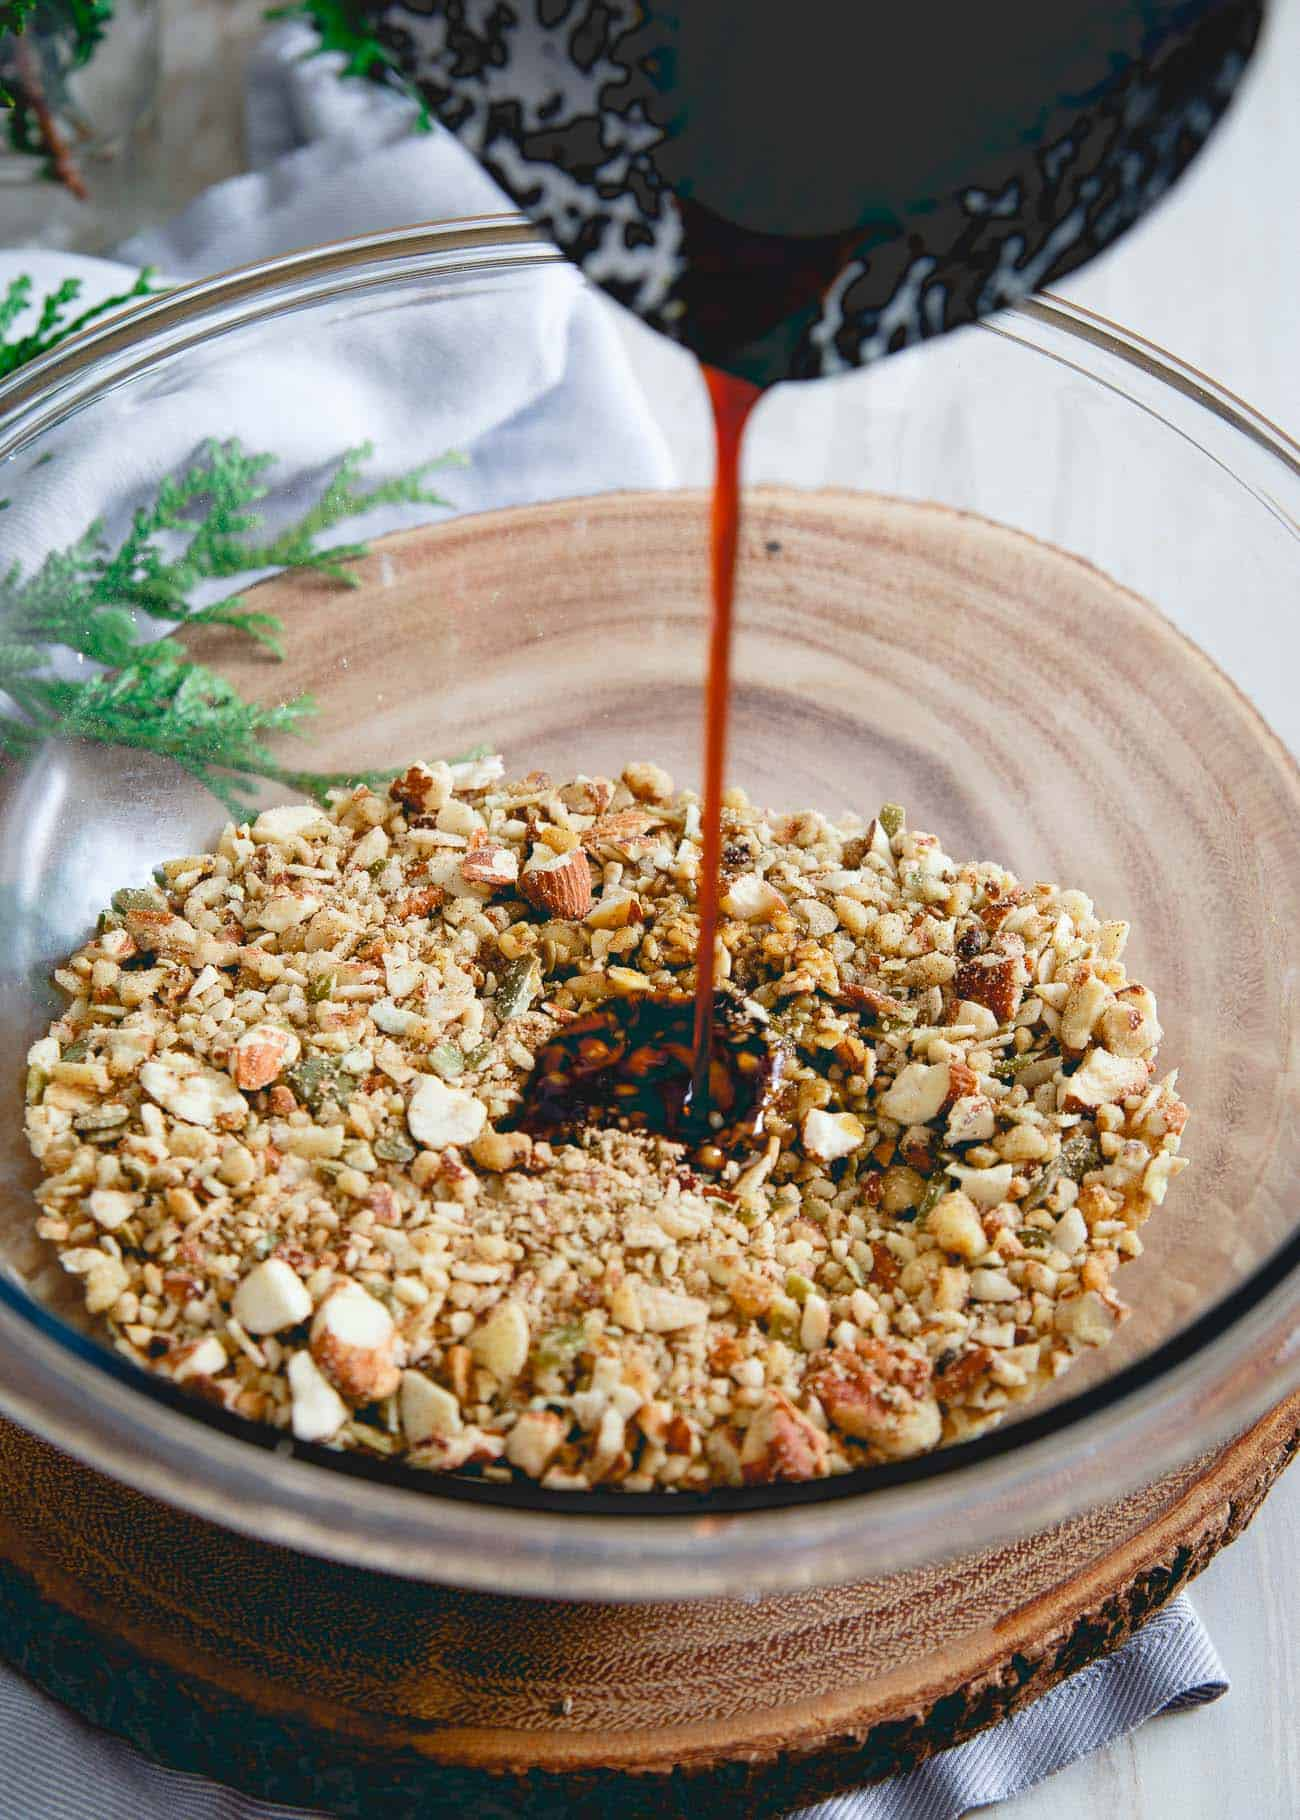 Molasses and ginger give this paleo granola a festive wintertime twist!